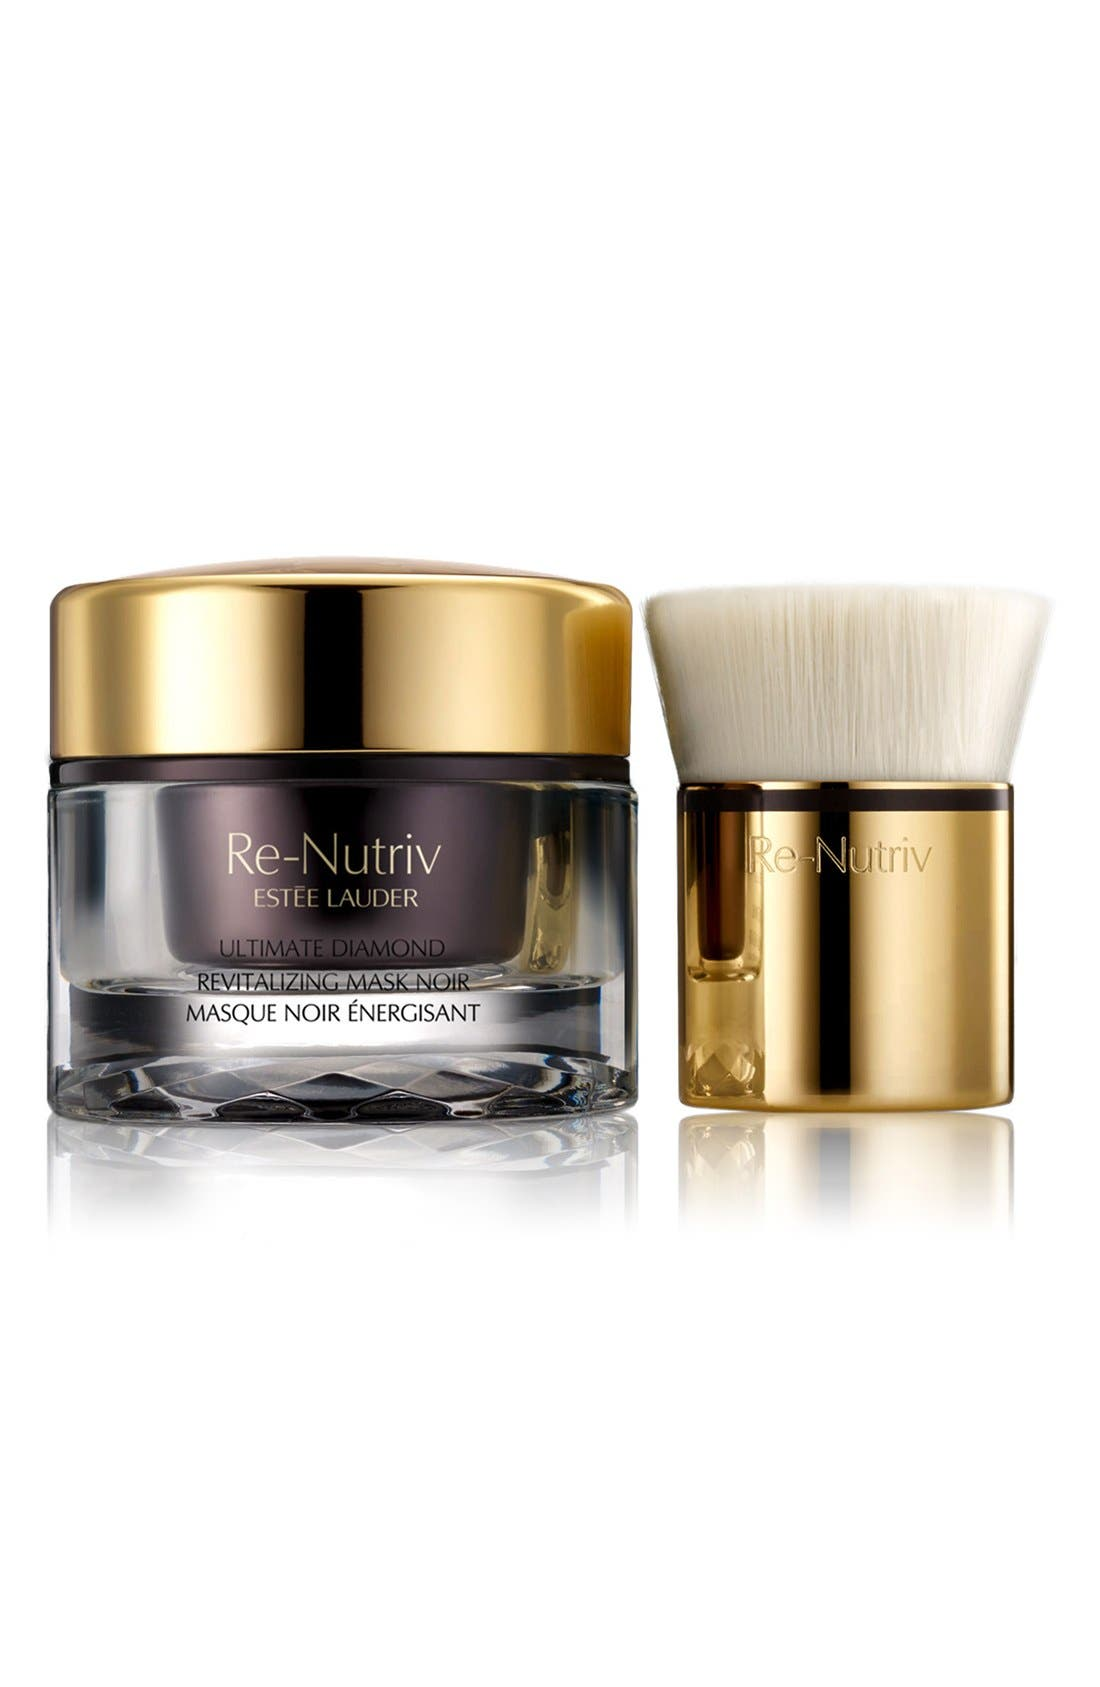 Estée Lauder Re-Nutriv Ultimate Diamond Revitalizing Mask Noir